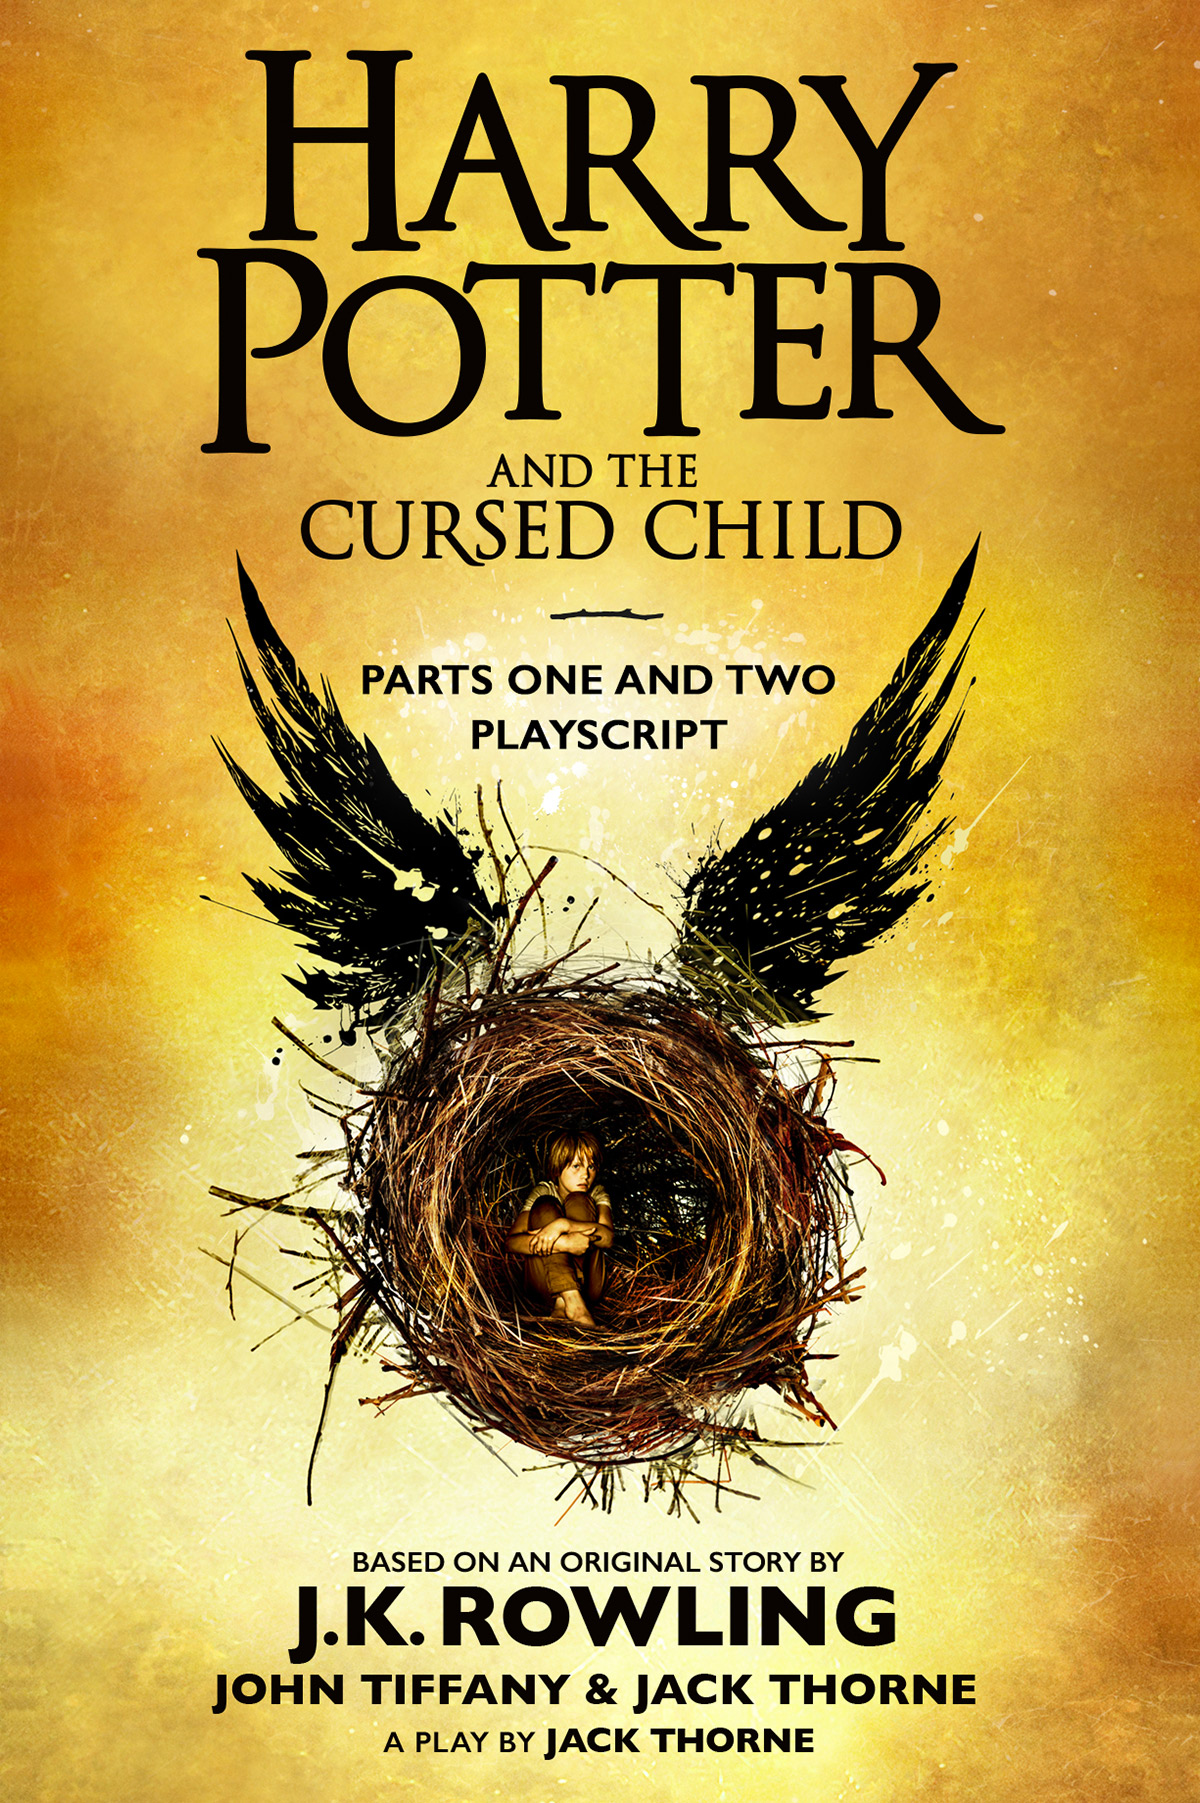 Harry Potter and the Cursed Child - Parts One and Two | Rowling, J.K.